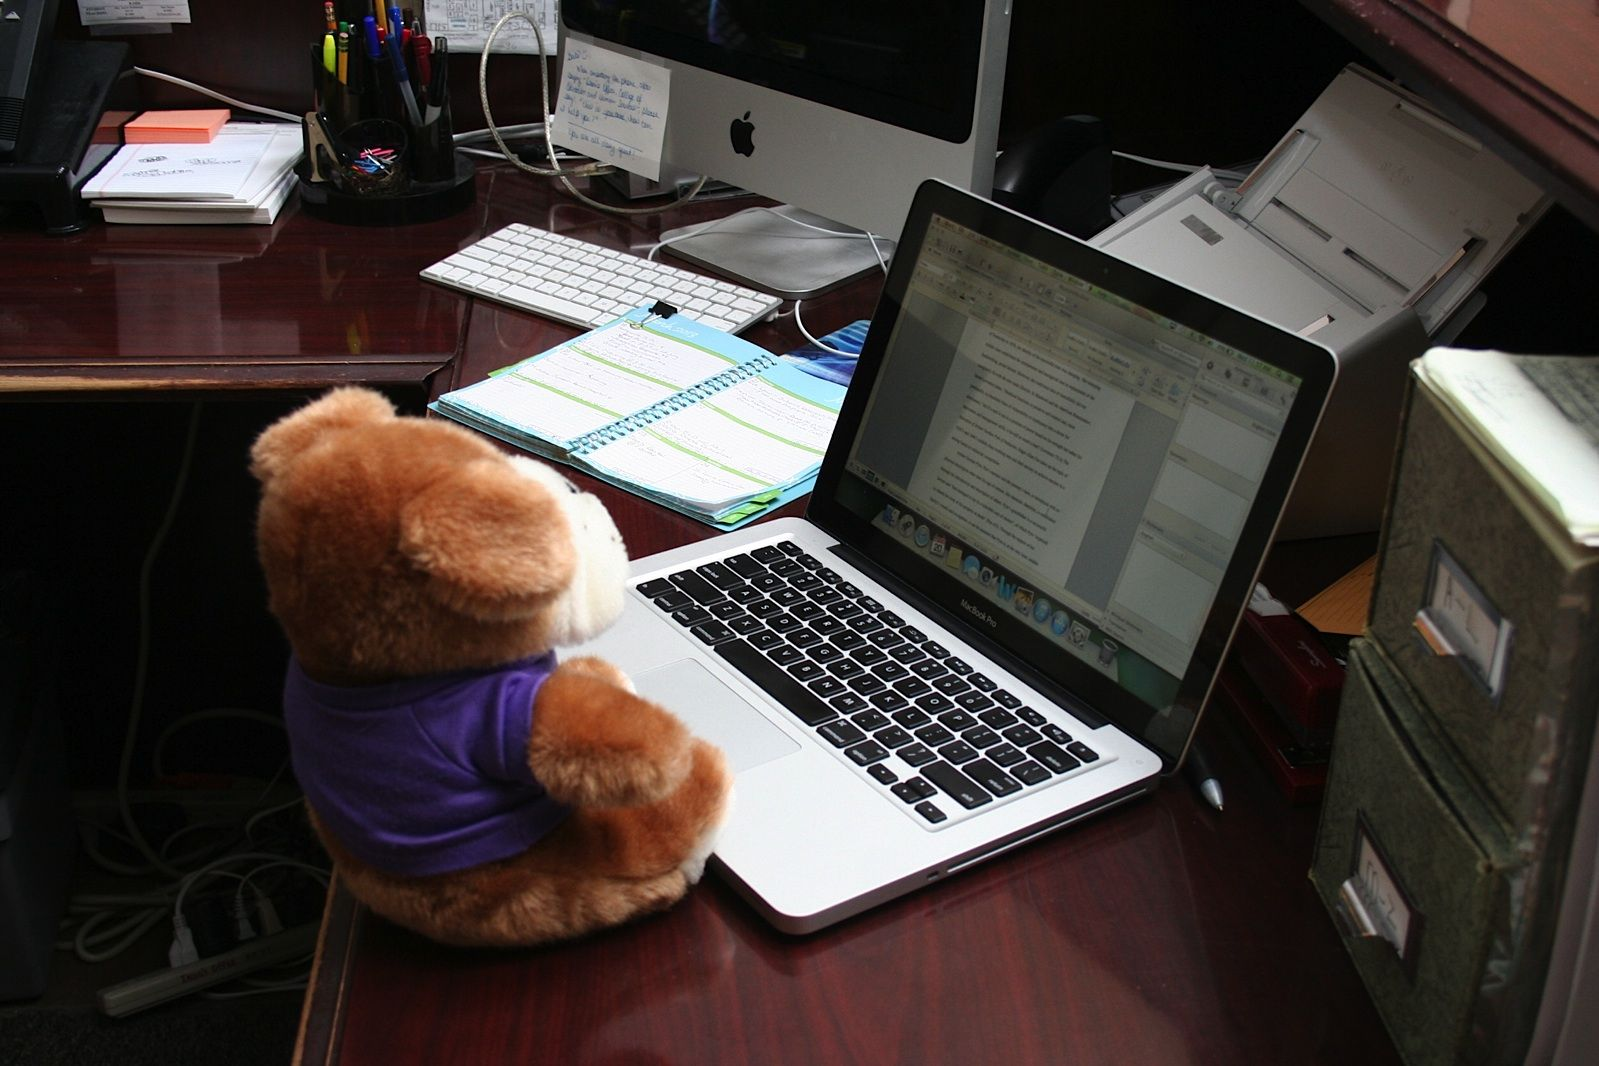 Rocky writing his Poe paper.